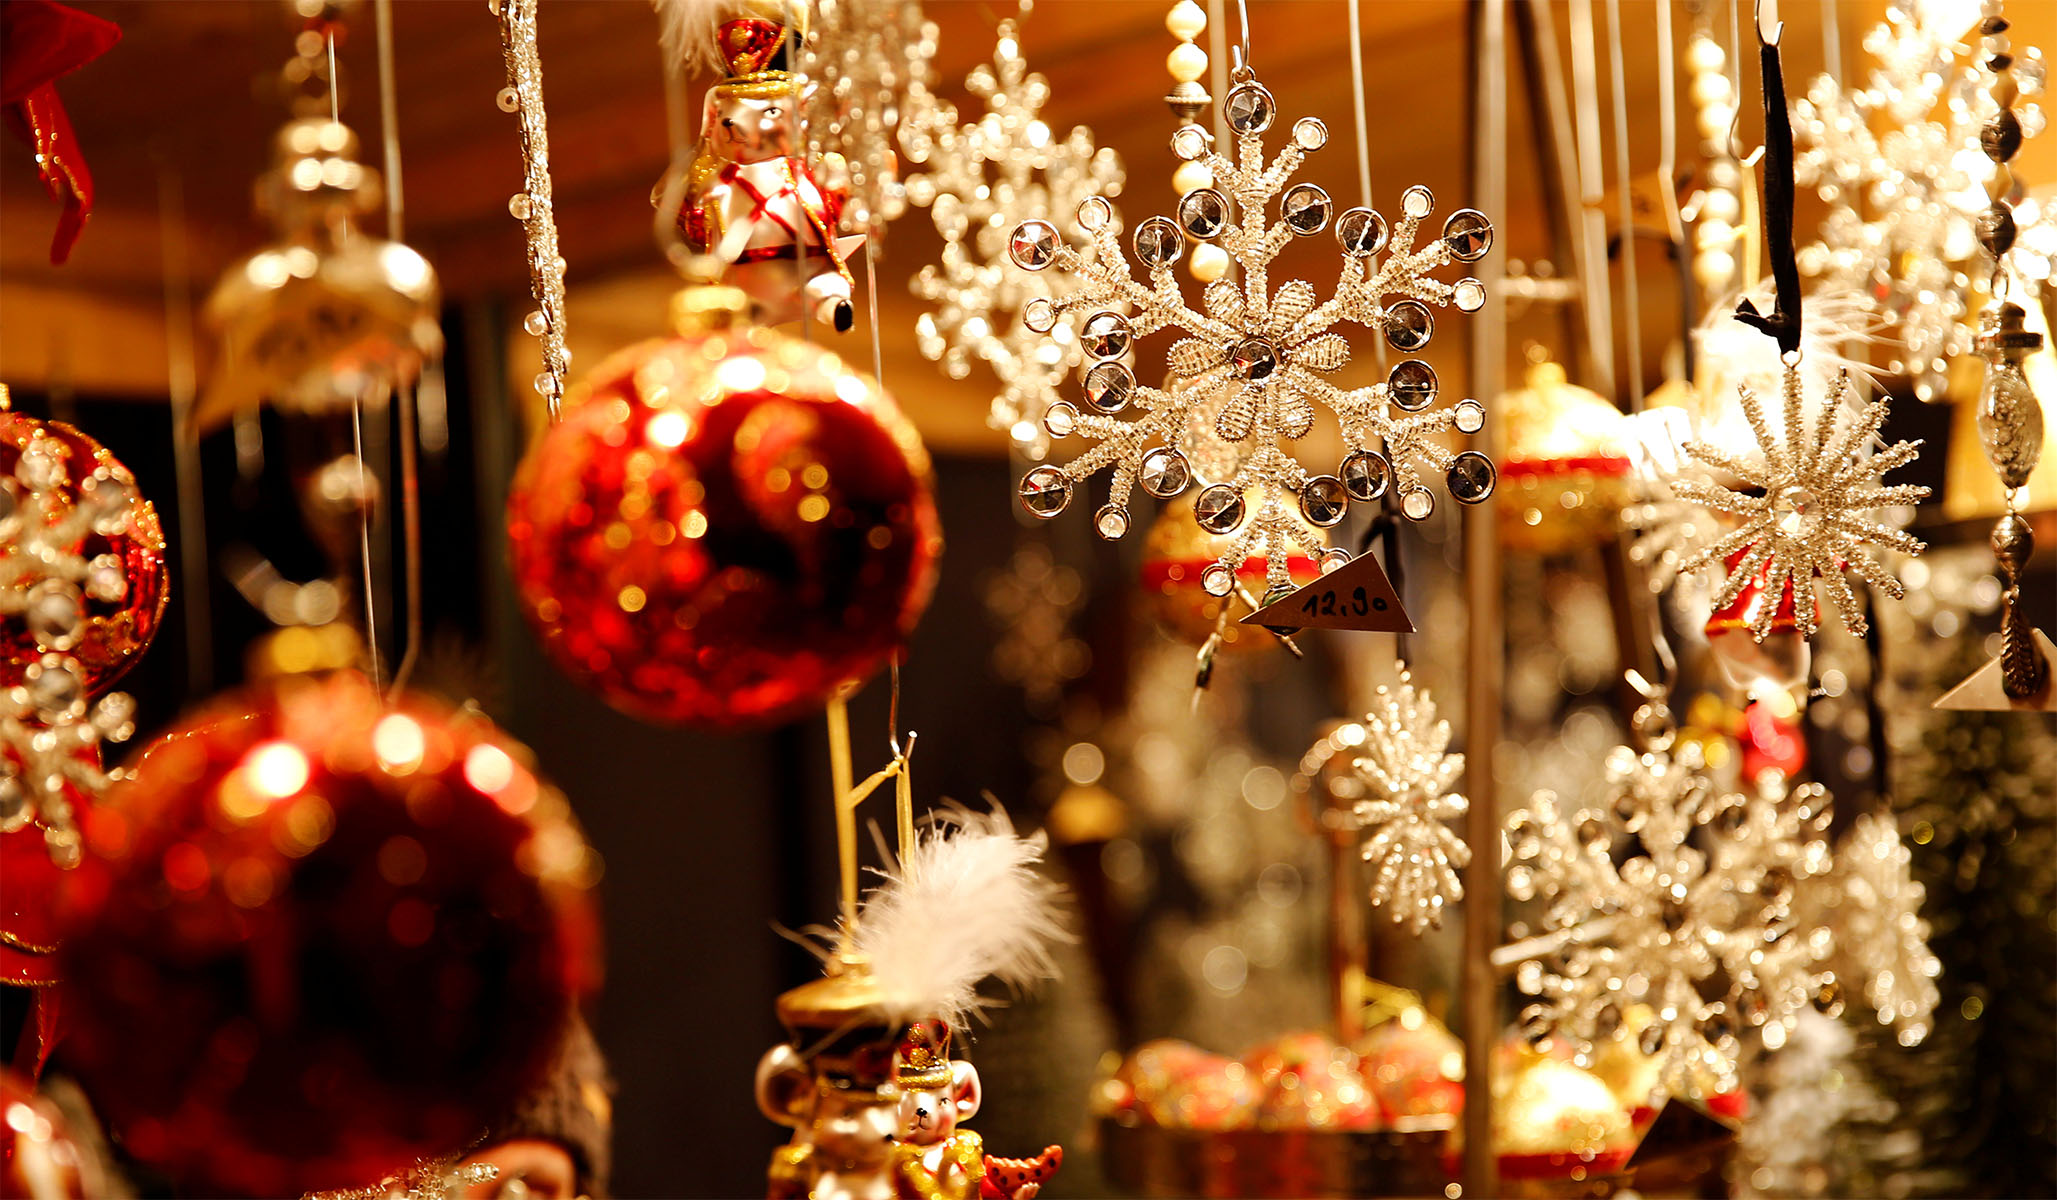 Christmas Decorations On Display At A Christmas Market In Front Of The  Schoenbrunn Palace In Vienna